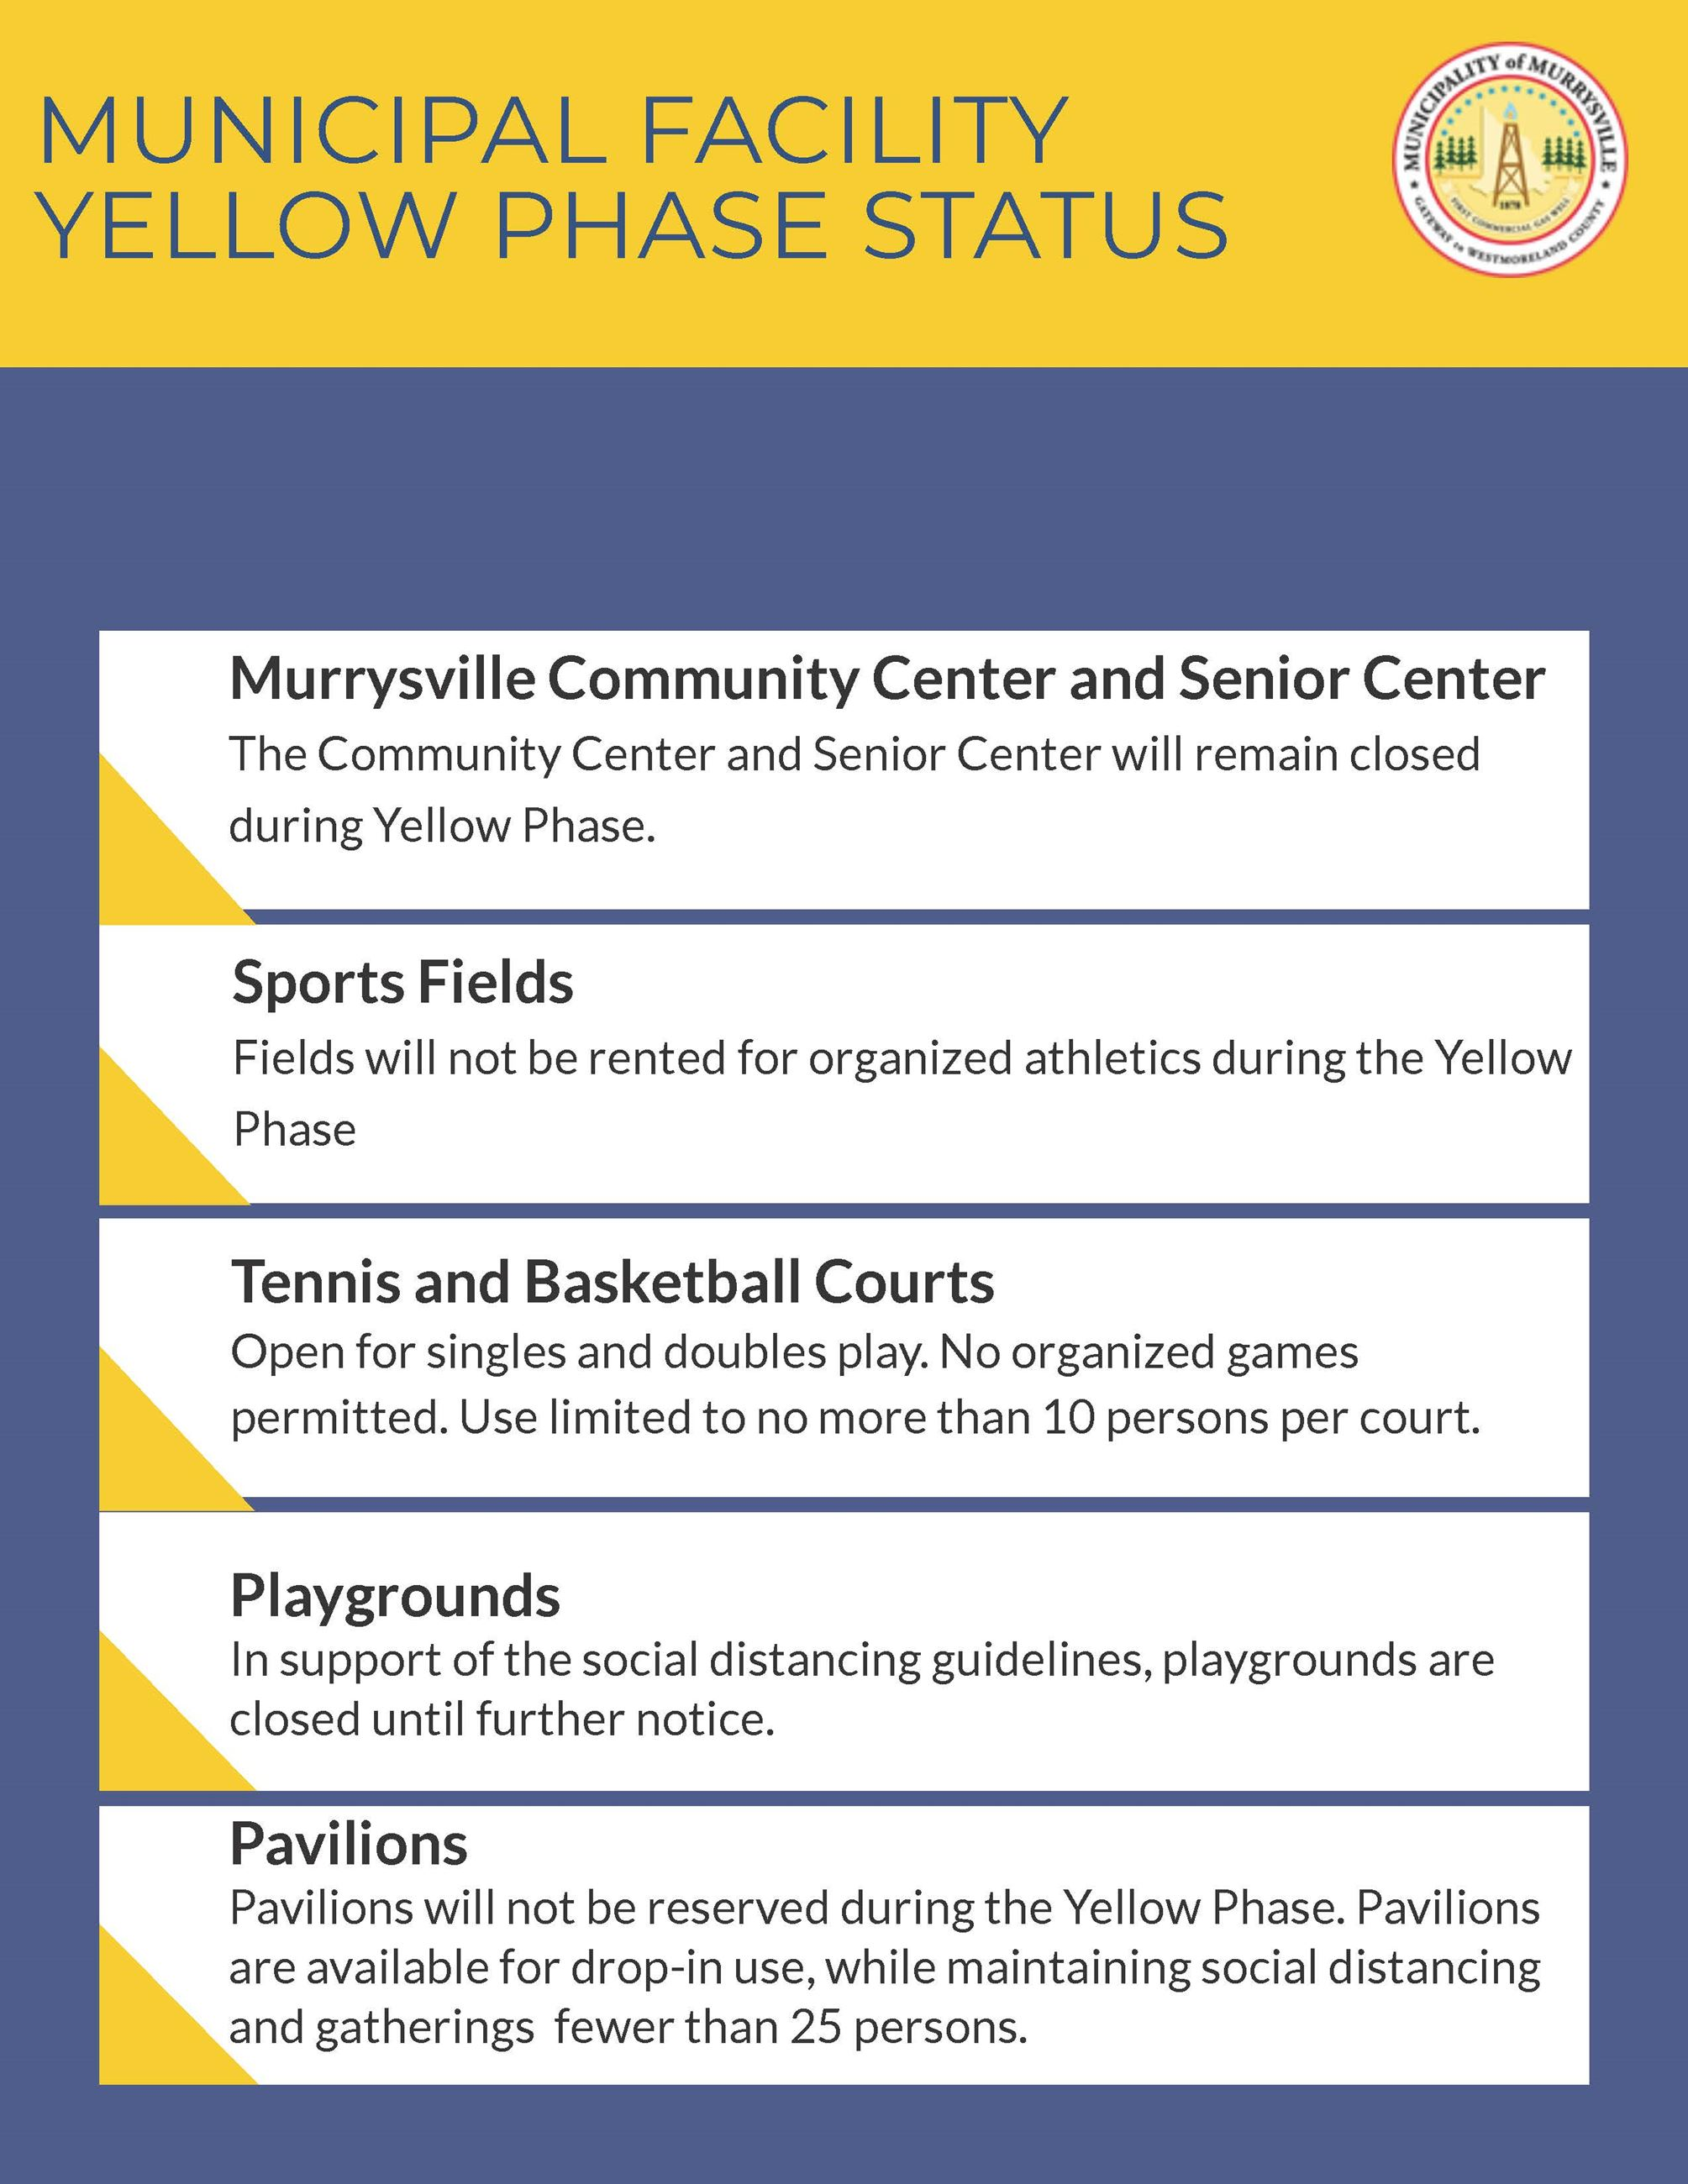 Facility status yellow phase